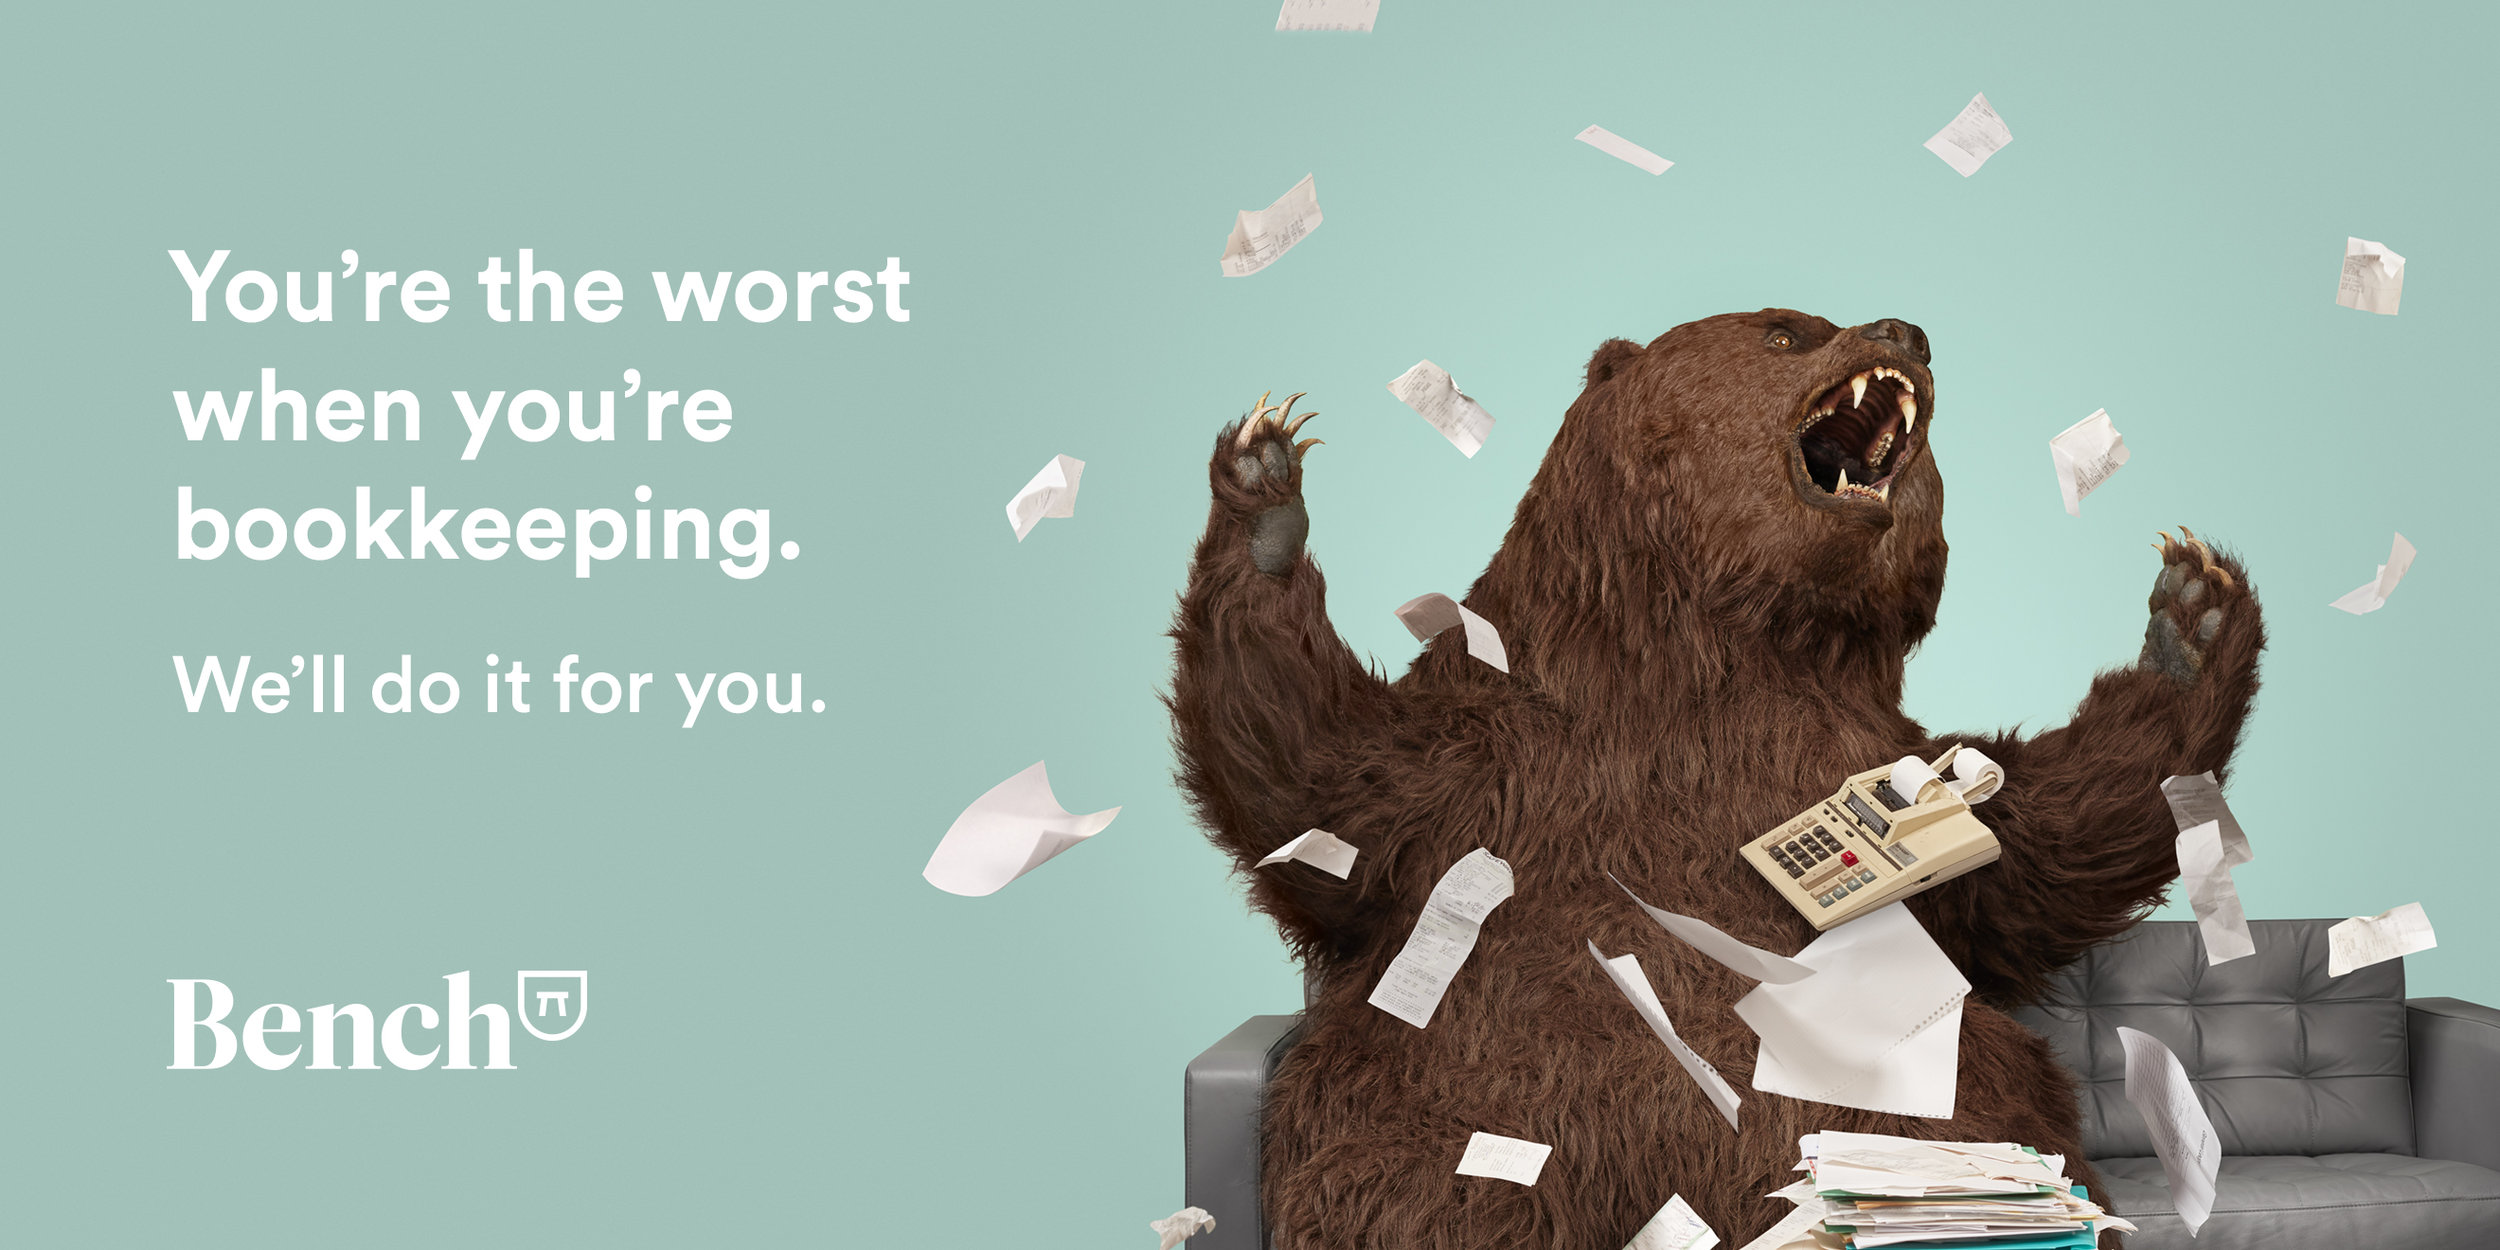 Bench-Bookkeeping-Campaign-Bear-Ad-John-Larigakis.jpg